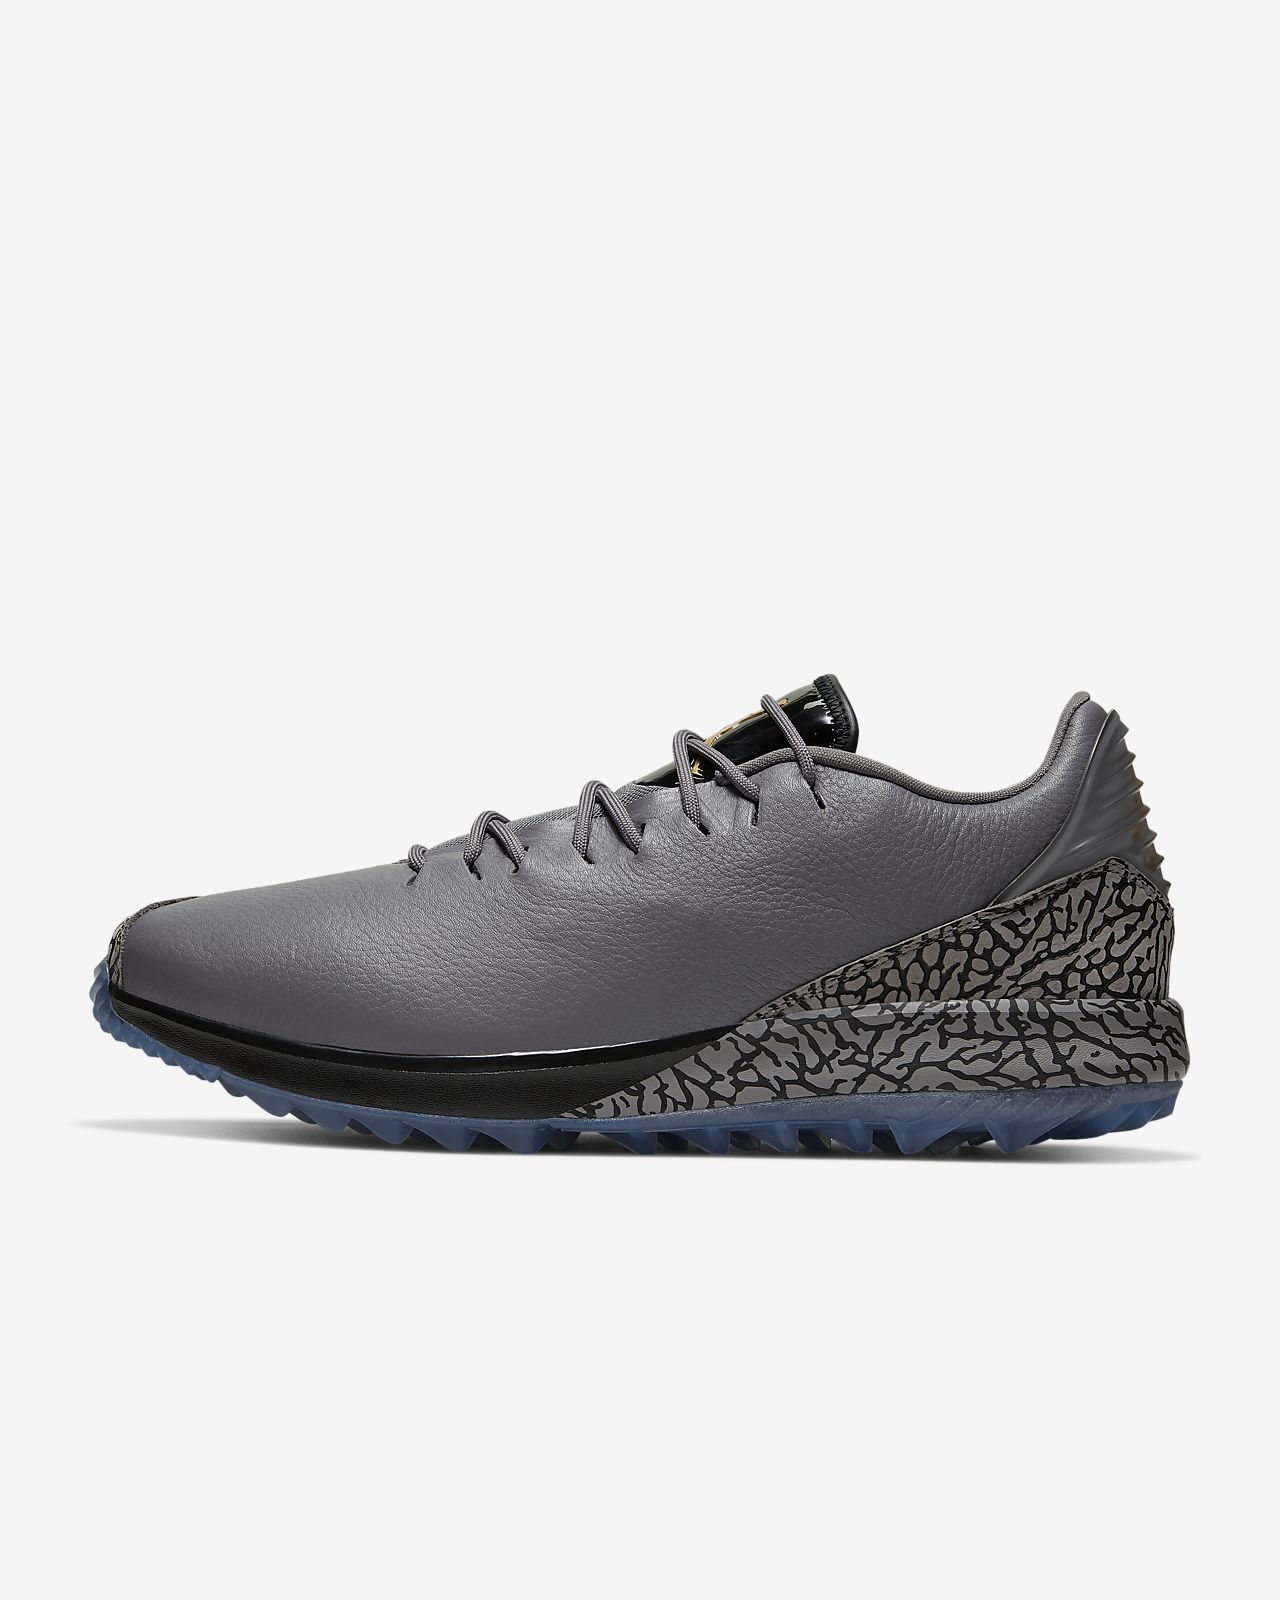 Jordan ADG Men's Golf Shoe